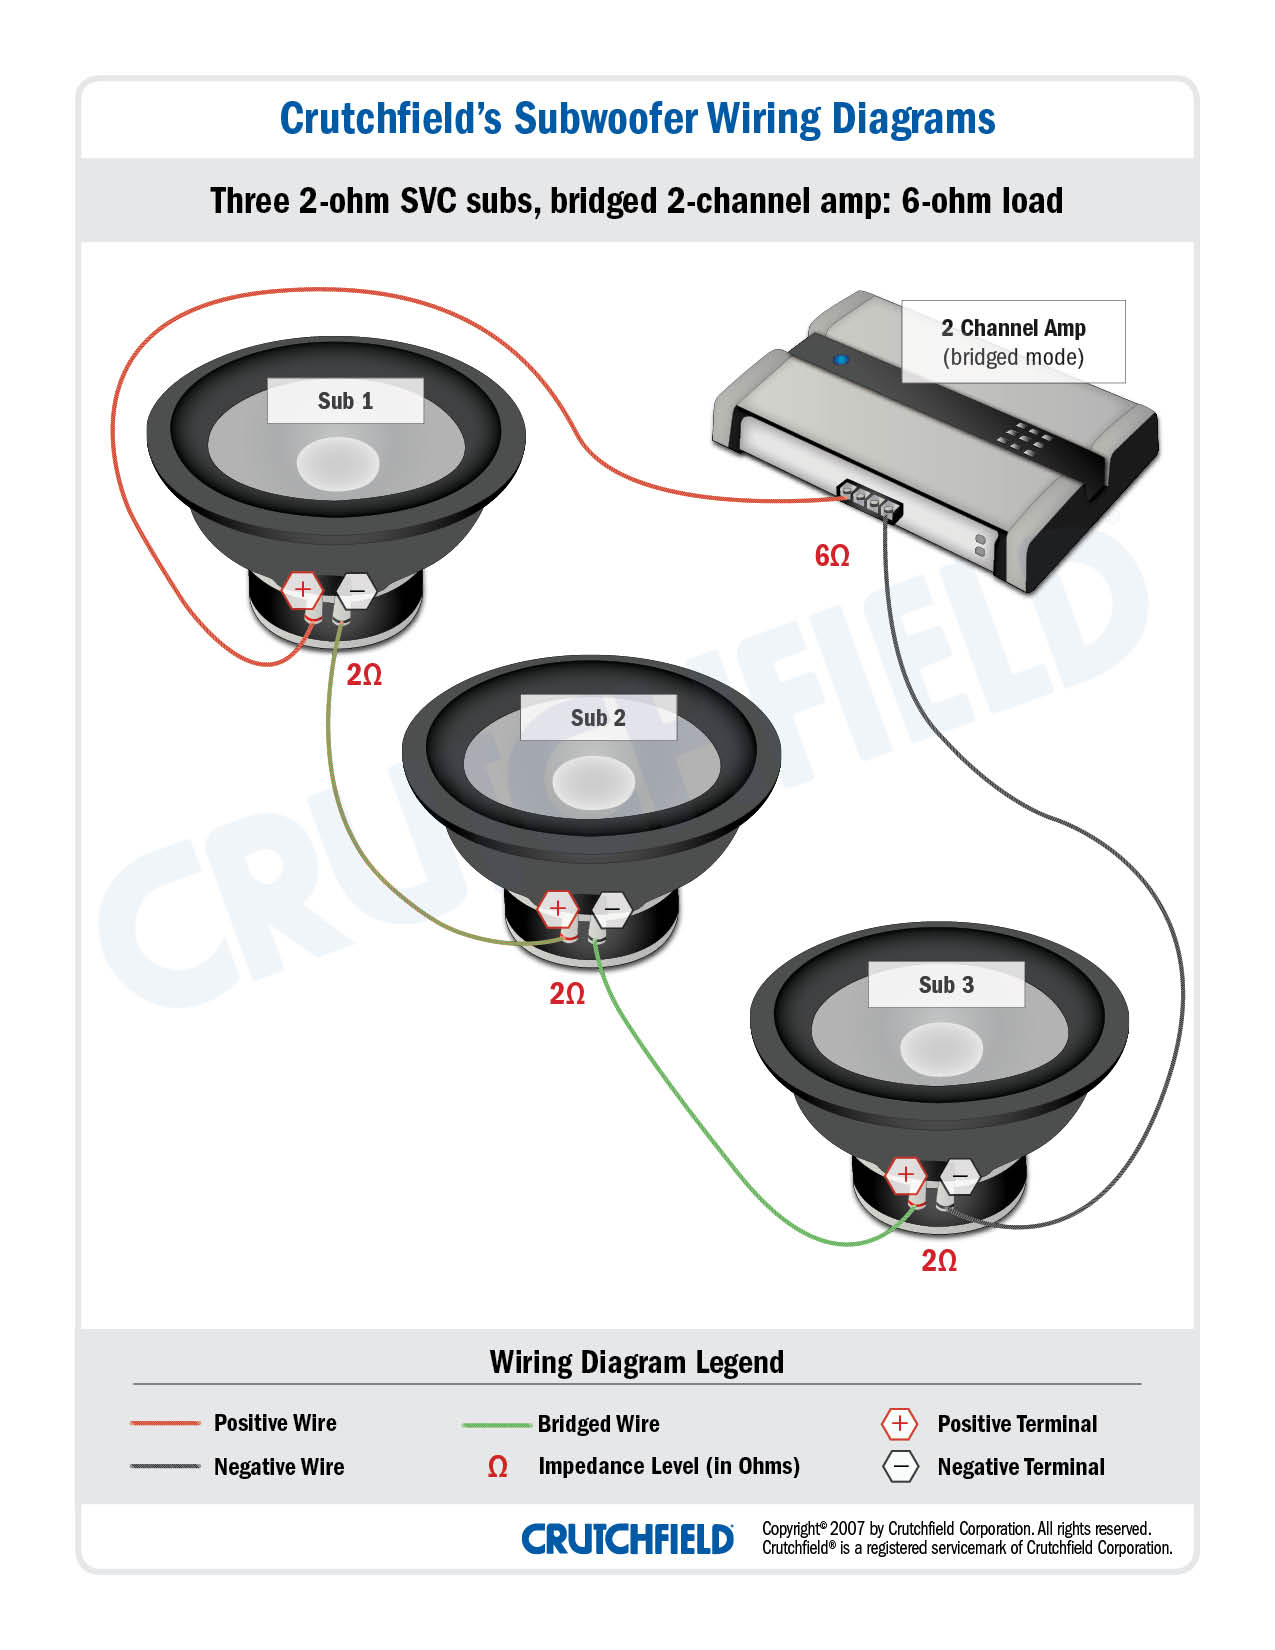 subwoofer wiring diagrams three subwoofers 3 svc 2 ohm 2 ch